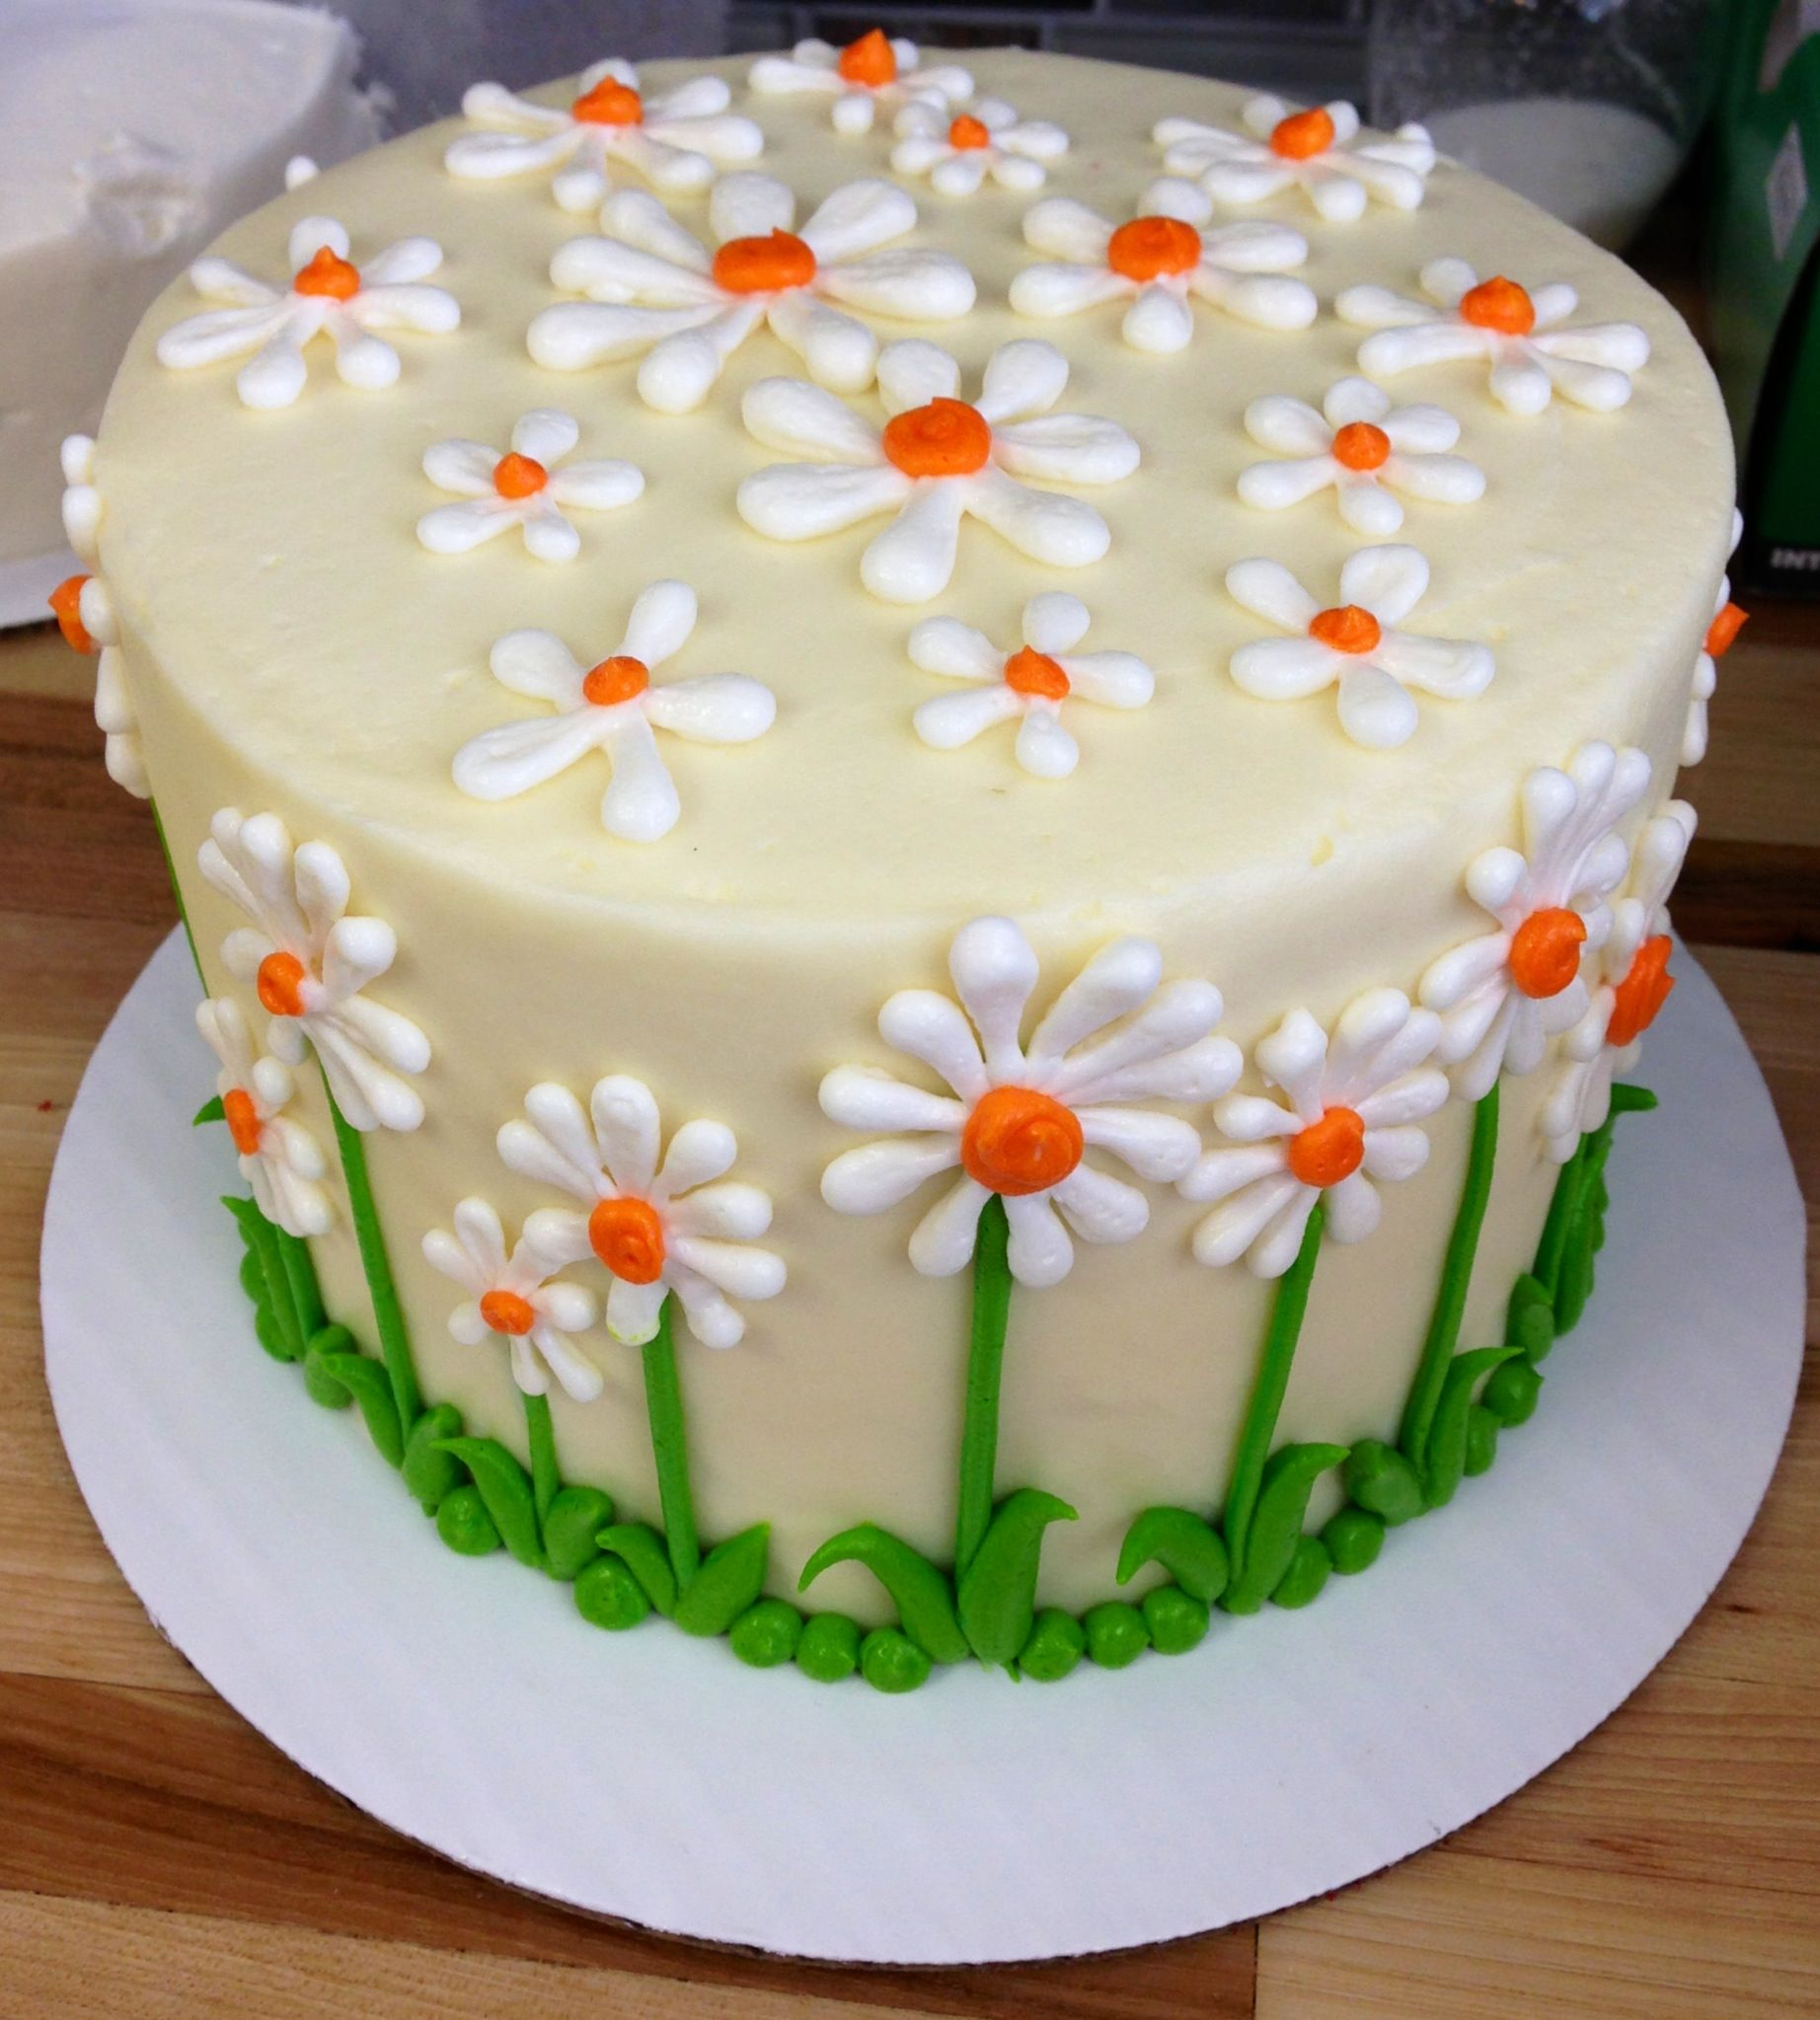 Daisy Flower Cake Birthday Cakes Pinterest Cake And Birthday Cakes